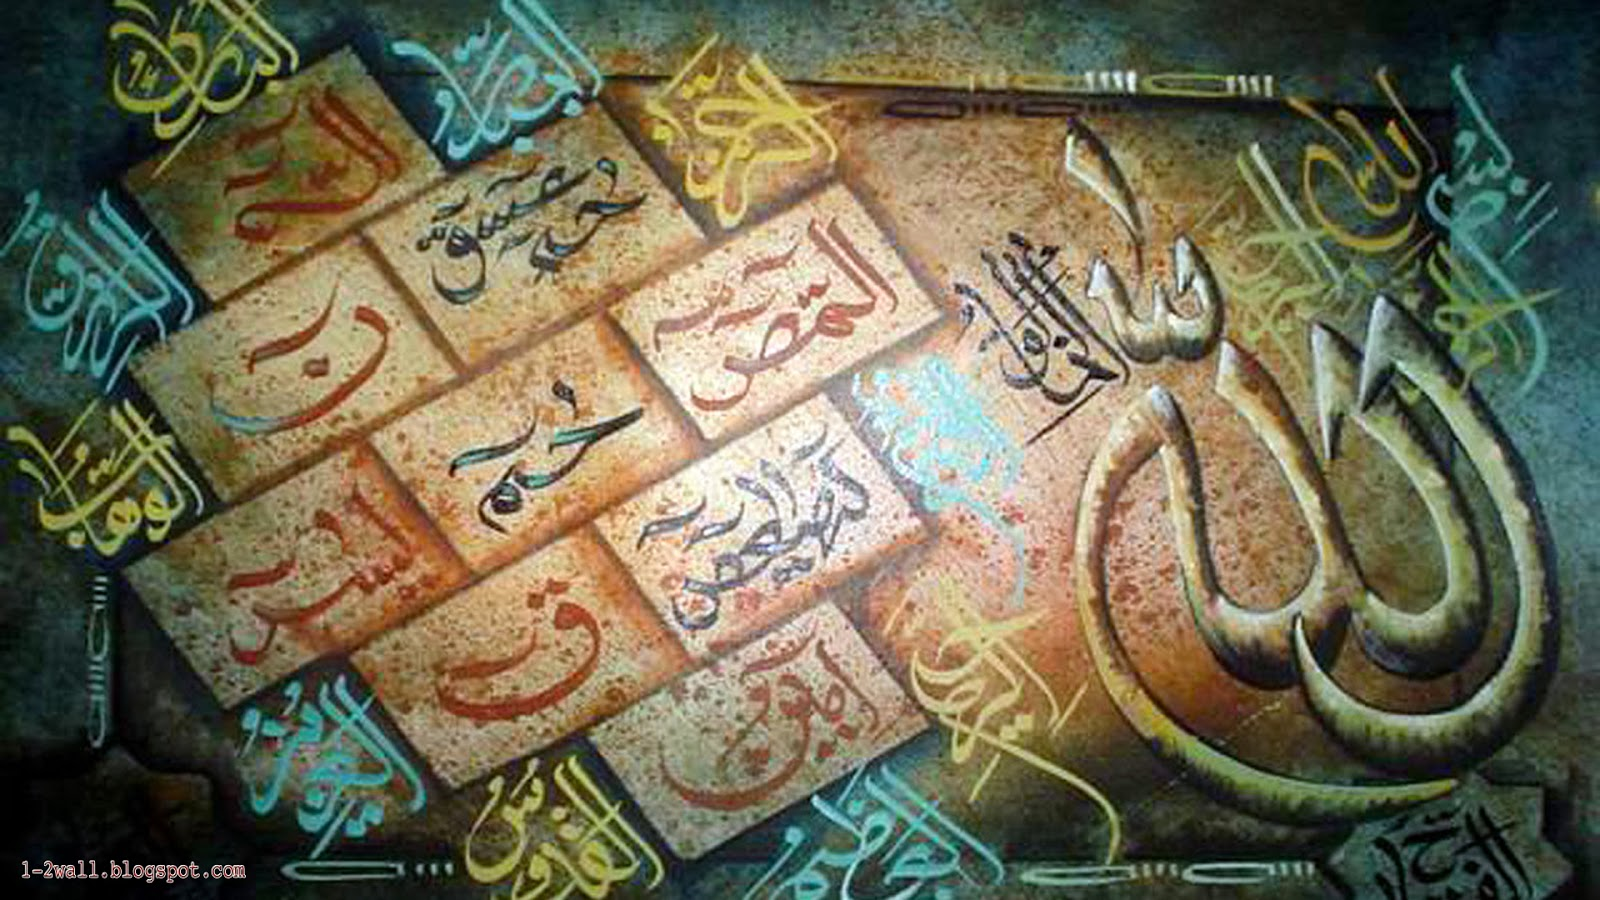 Loh E Qurani Wallpaper Free Download